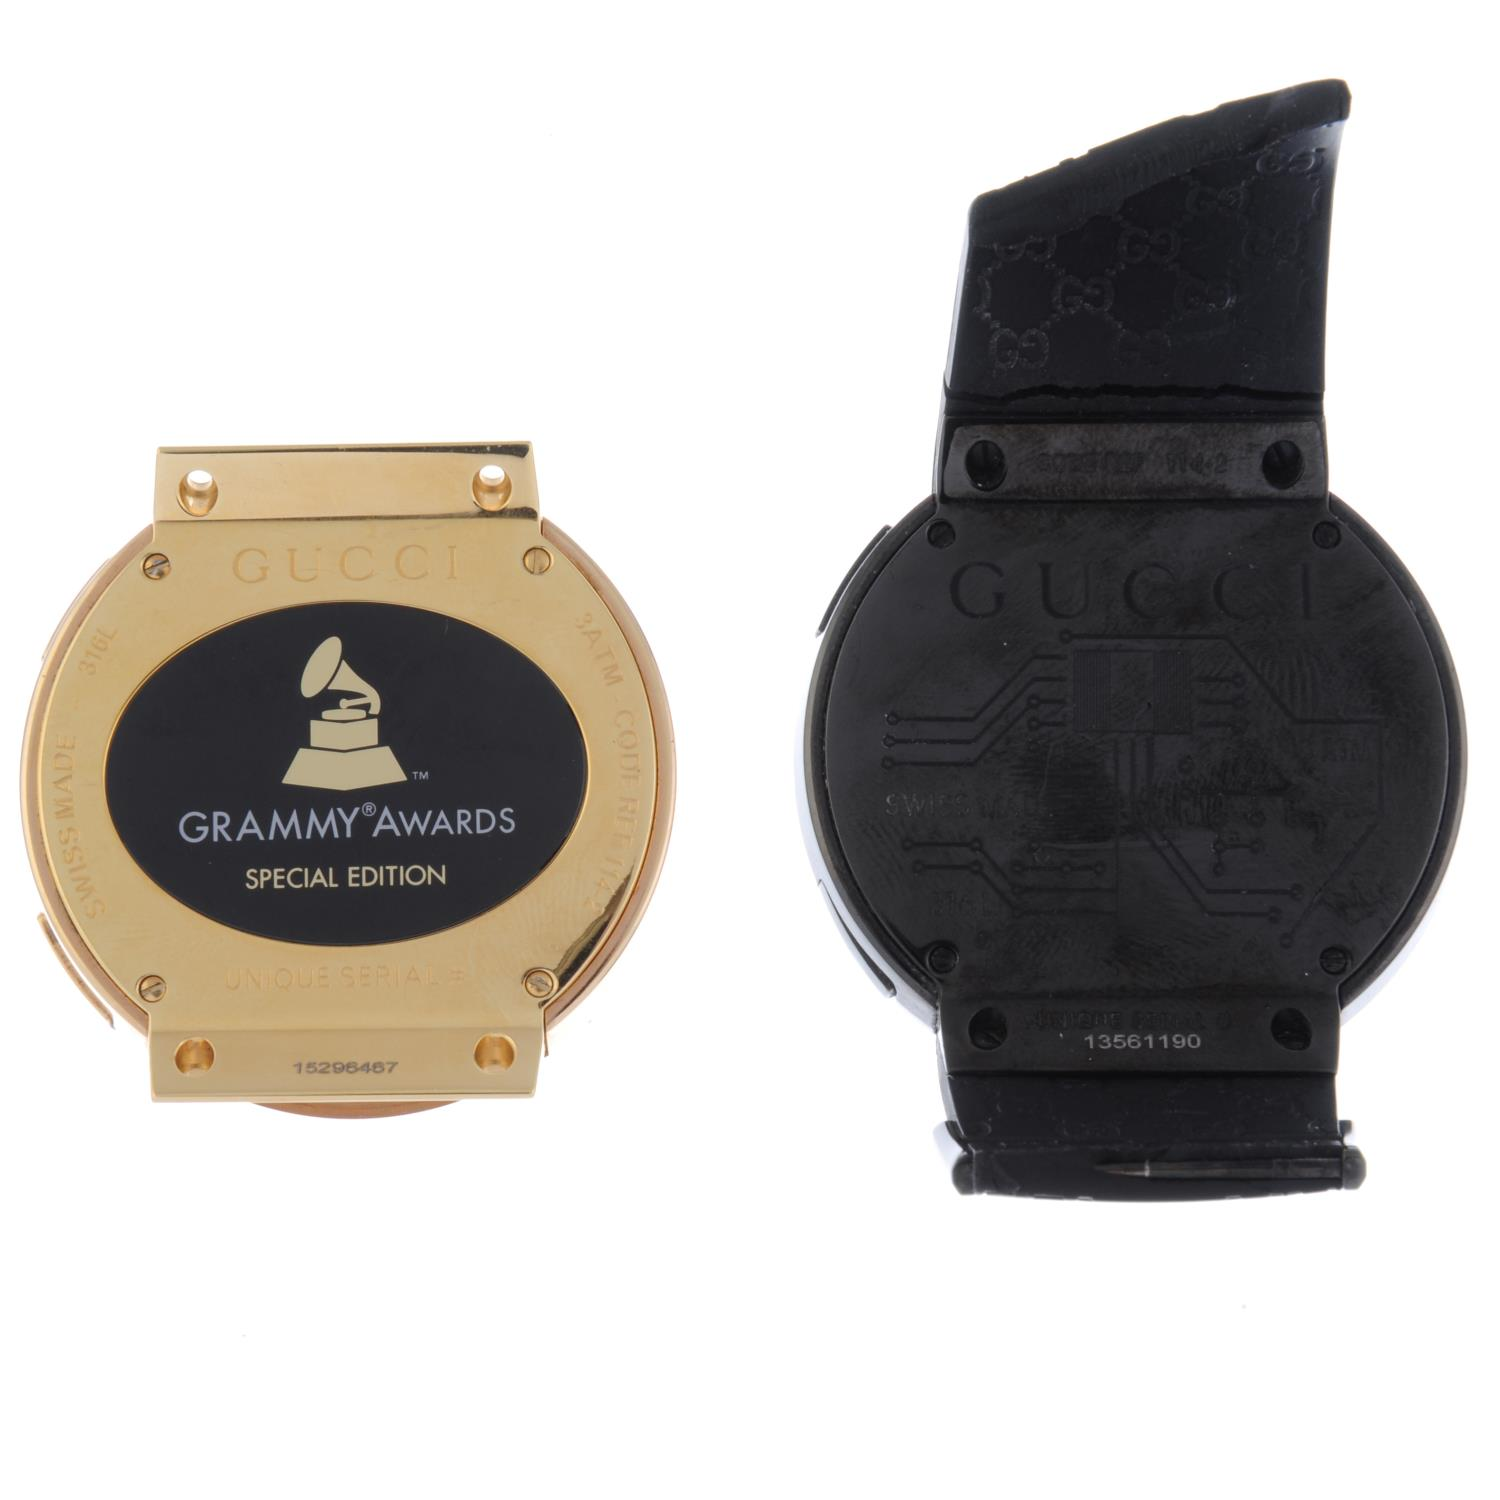 Lot 44 - GUCCI - a gentleman's Latin Grammy Awards Special Edition I-Gucci watch head.